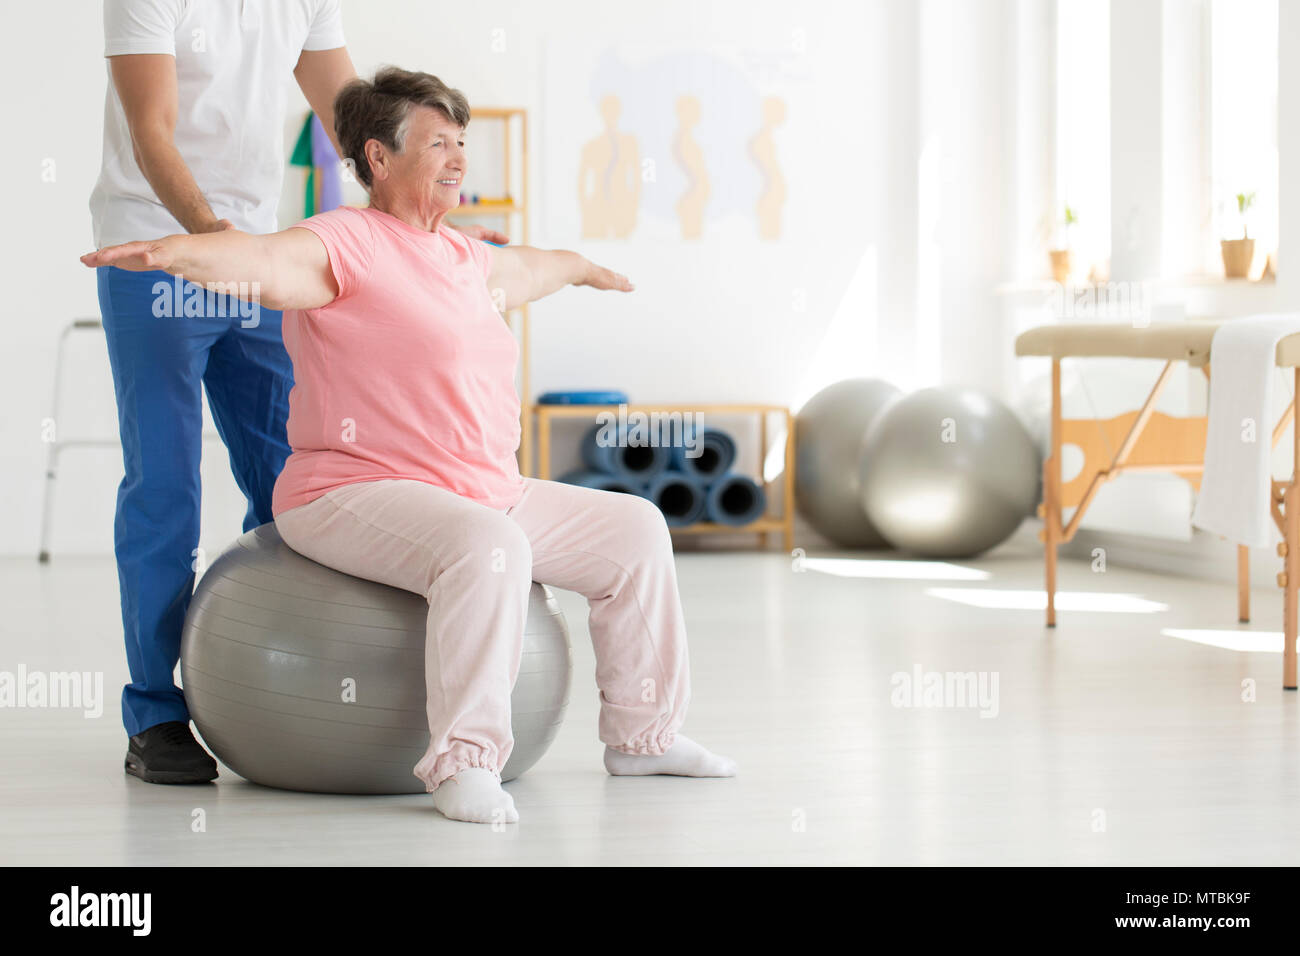 Elderly senior ward trying to maintain balance while sitting on a grey fit ball while being supported by physiotherapist - Stock Image